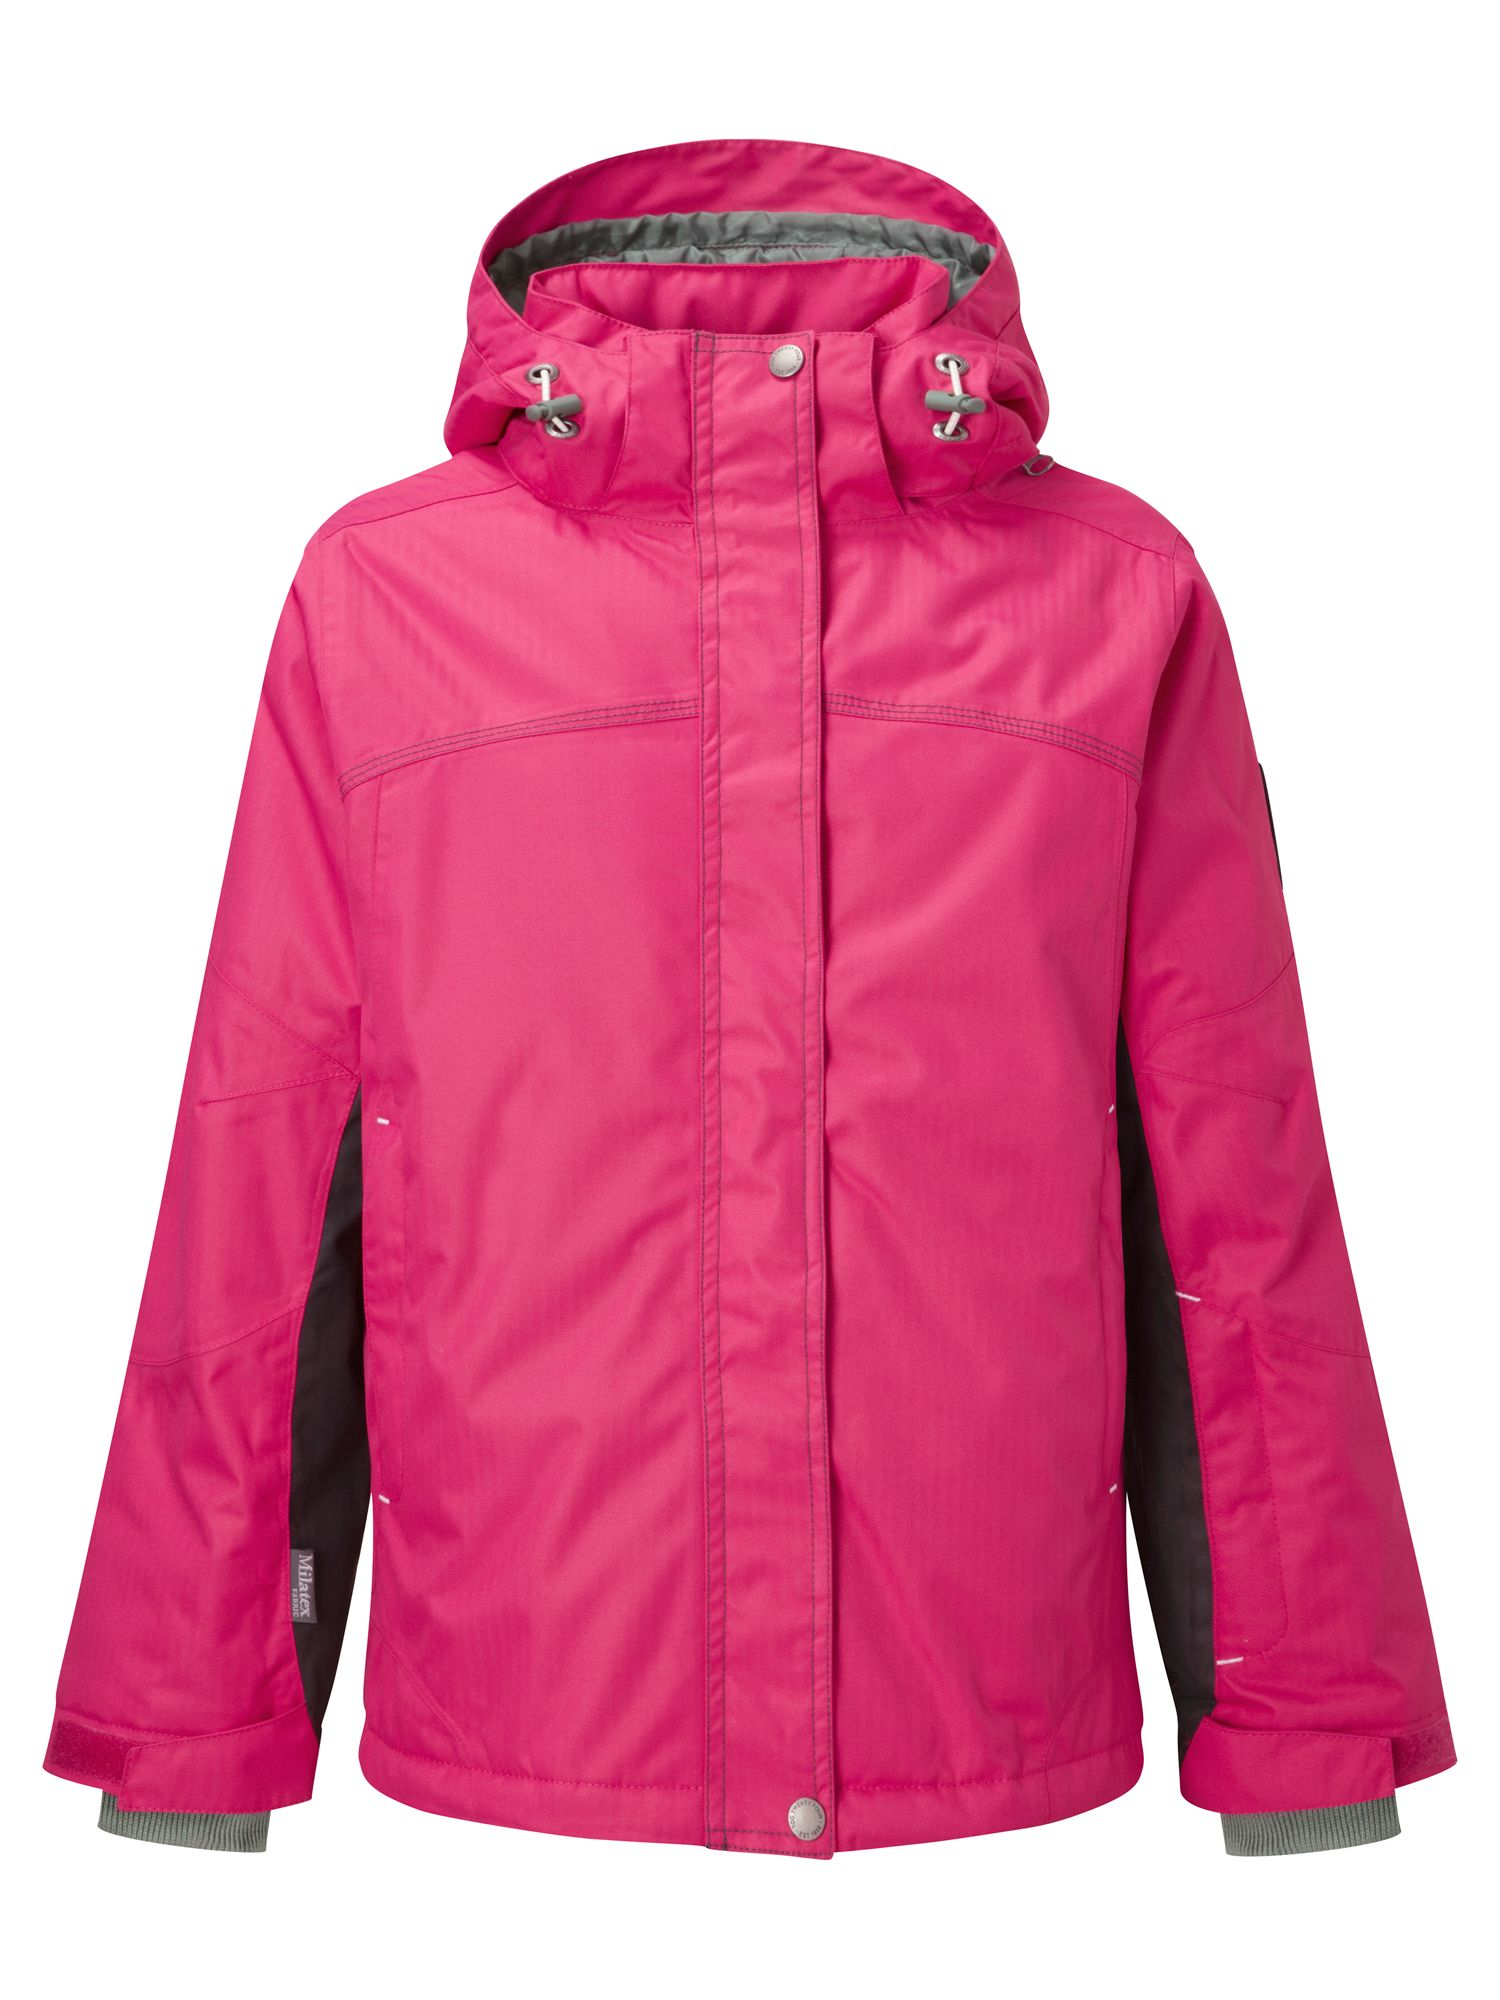 Girls scoot milatex jacket